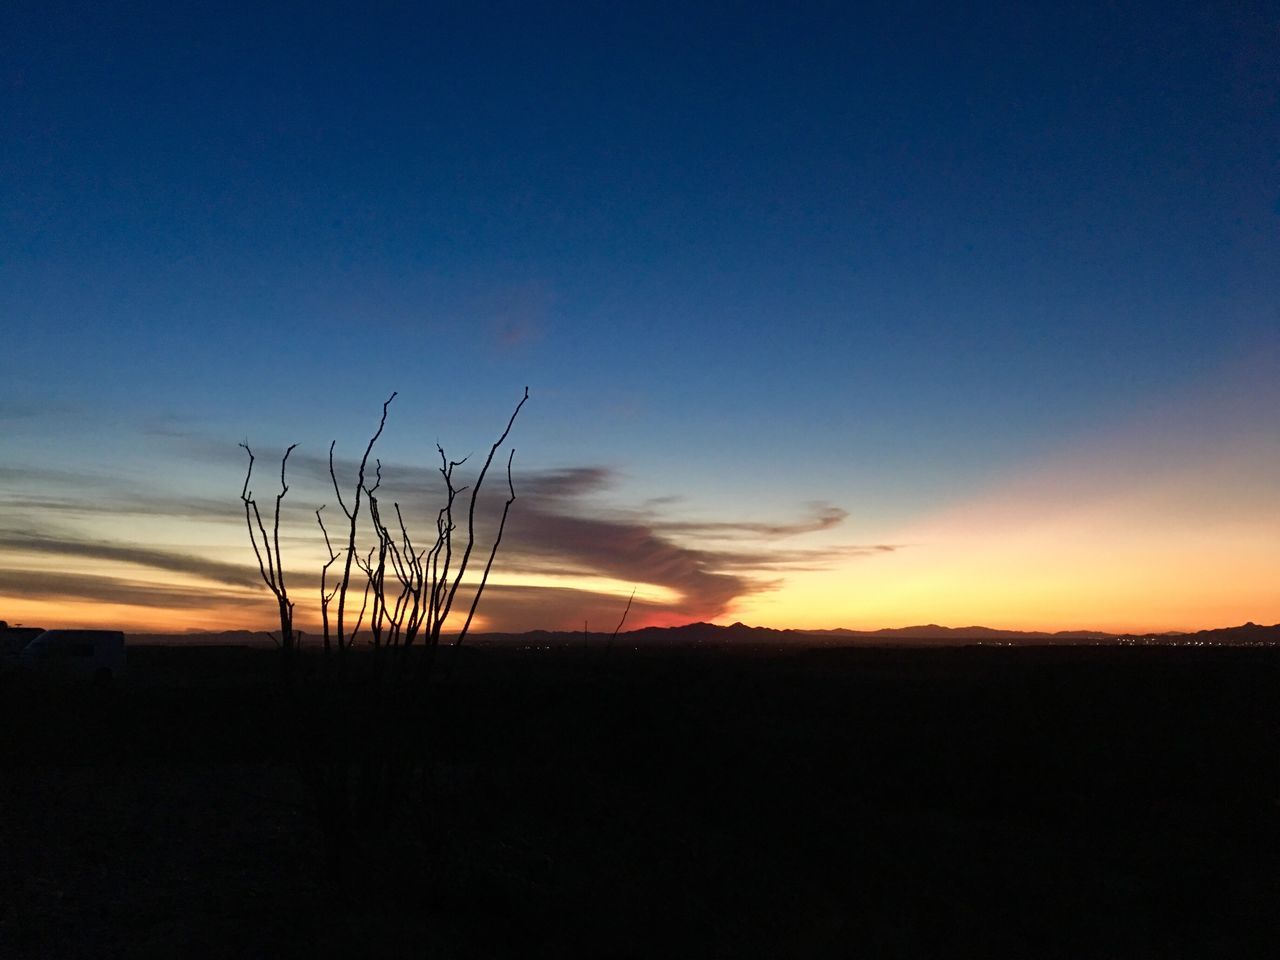 sunset, nature, tranquil scene, beauty in nature, silhouette, tranquility, scenics, field, growth, landscape, copy space, plant, no people, outdoors, sky, blue, rural scene, agriculture, grass, tree, day